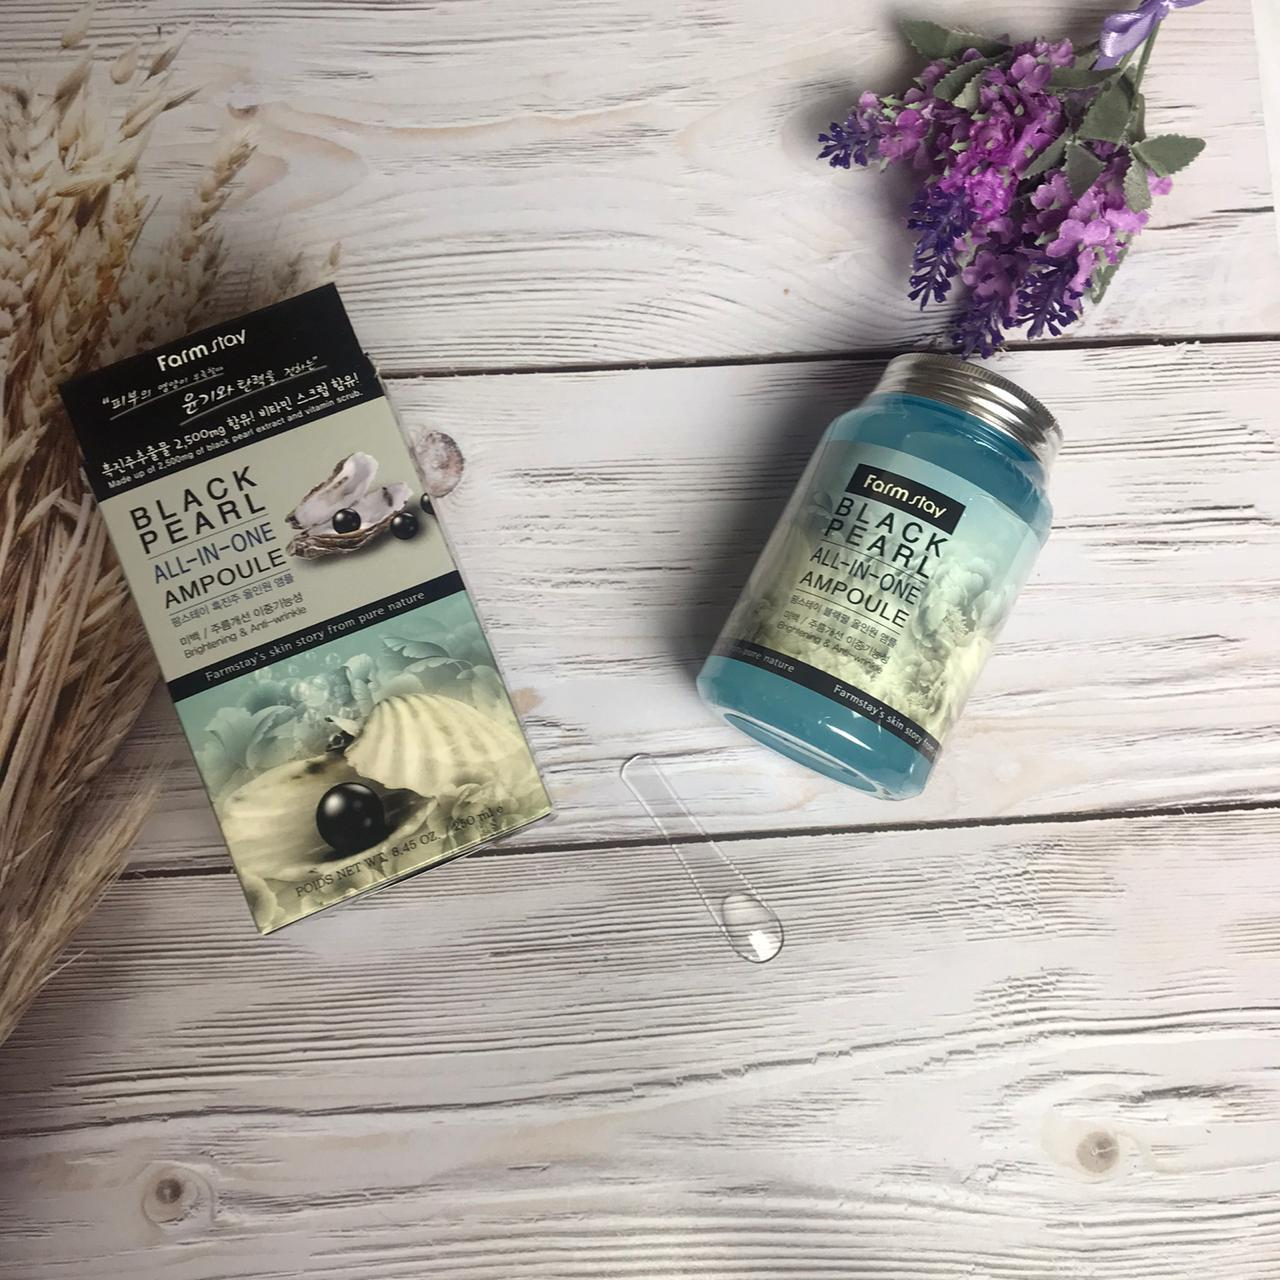 Сыворотка для лица Farm stay black pearl all in one ampoule